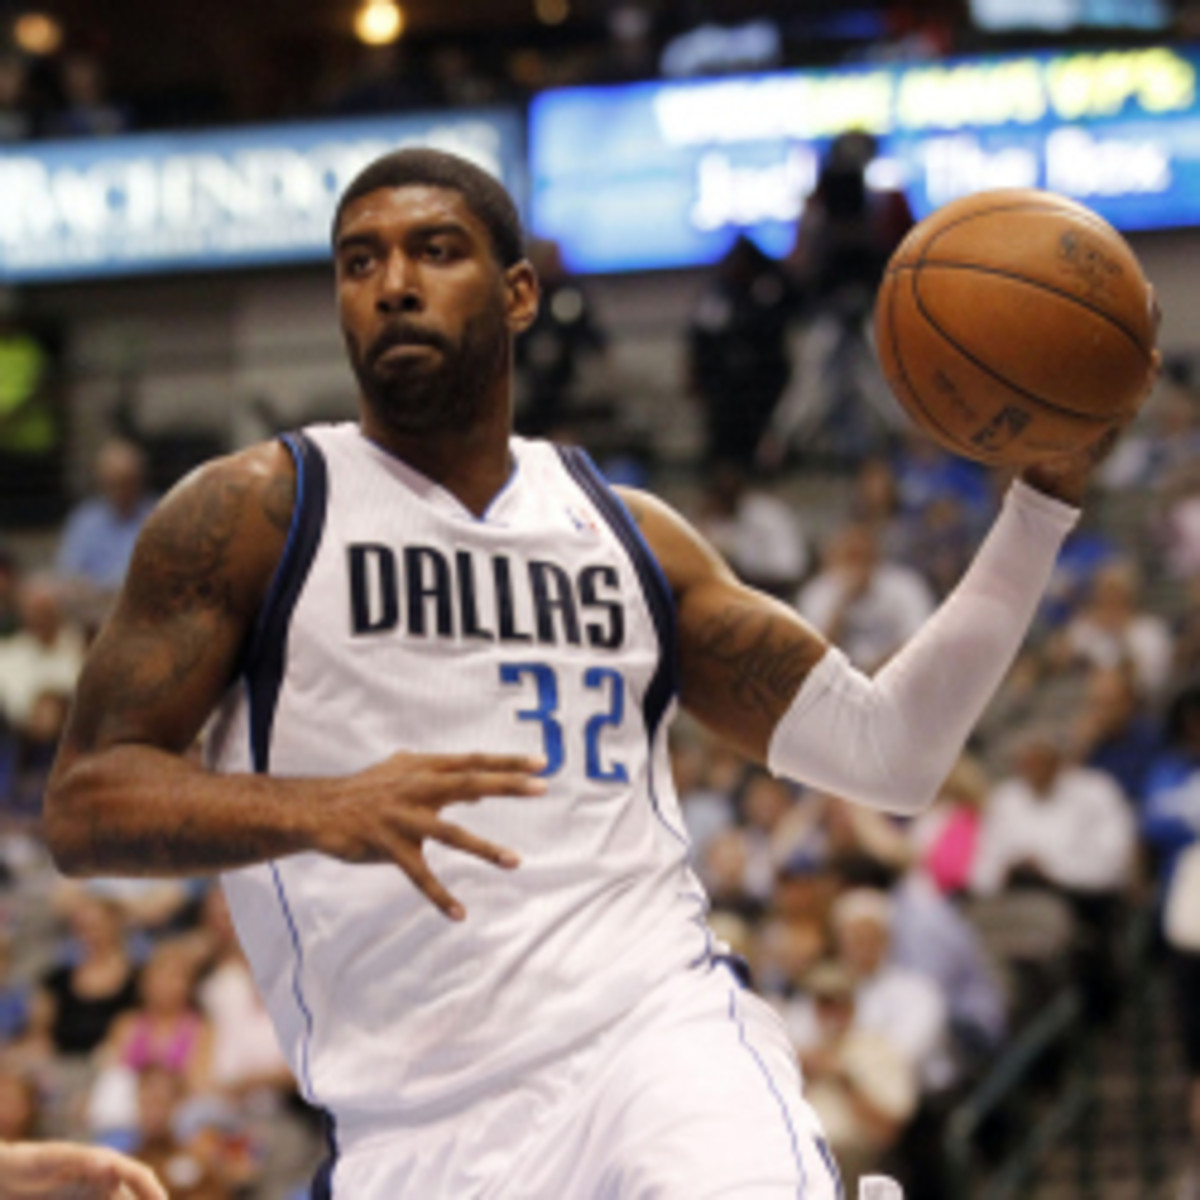 Mavs guard O.J. Mayo has decided not to take the $4.2 million option in his contract and will become a free agent. (Fort Worth Star-Telegram via Getty Images)